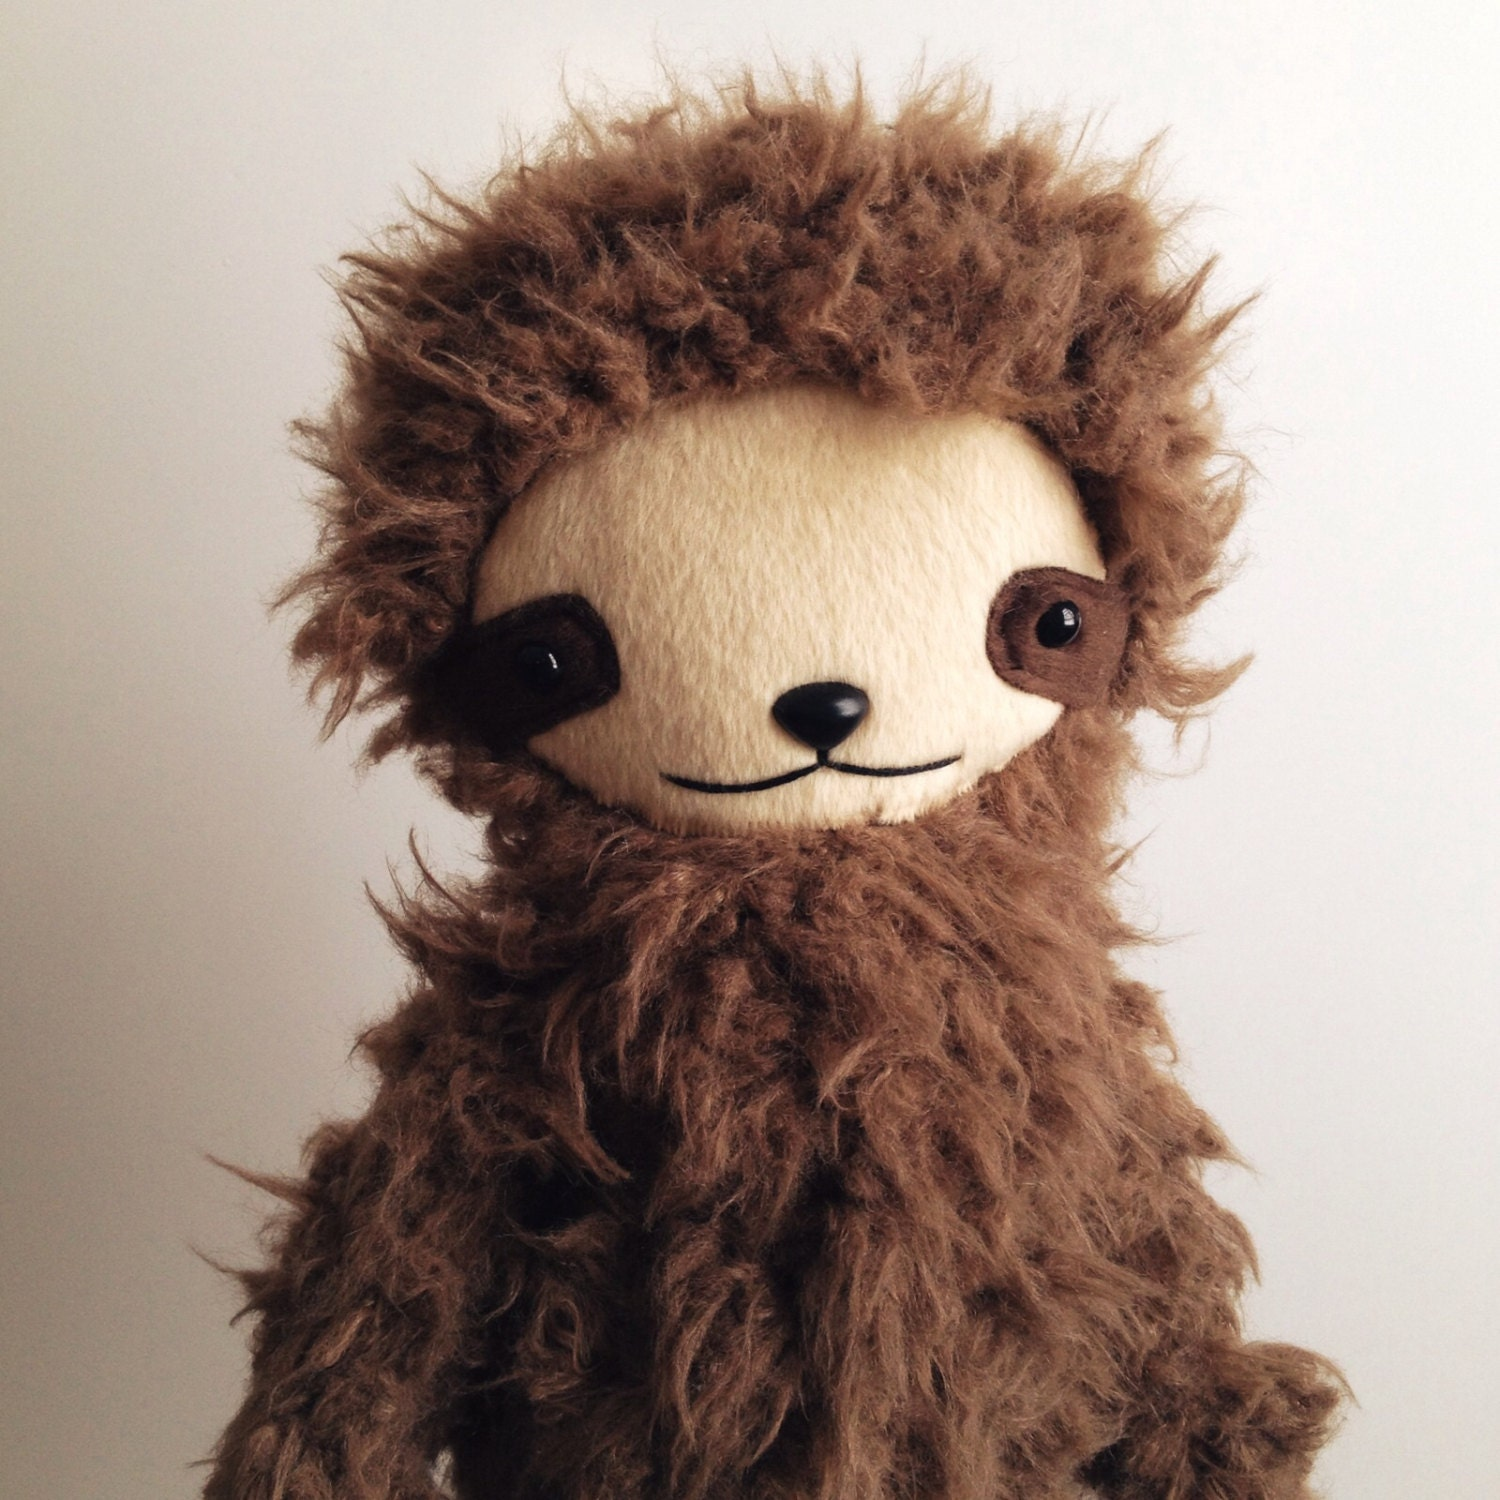 Kawaii Sloth Stuffed Animal Plushie In Brown